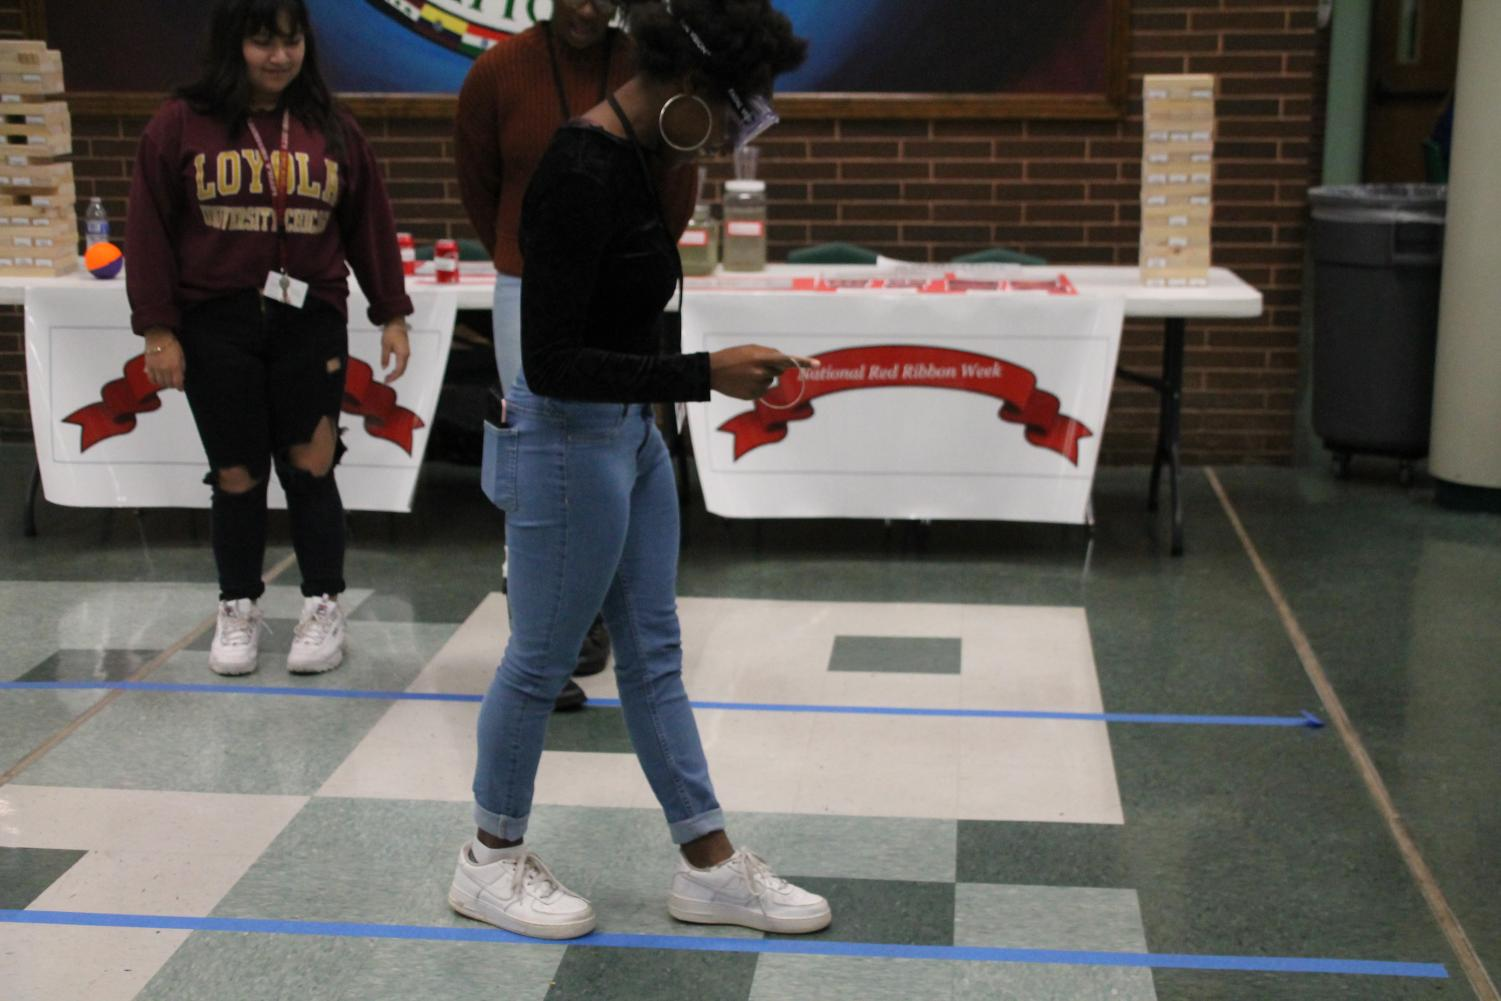 To simulate the effects of drinking, counselors provide students with impairment goggles and ask them to perform normal tasks.